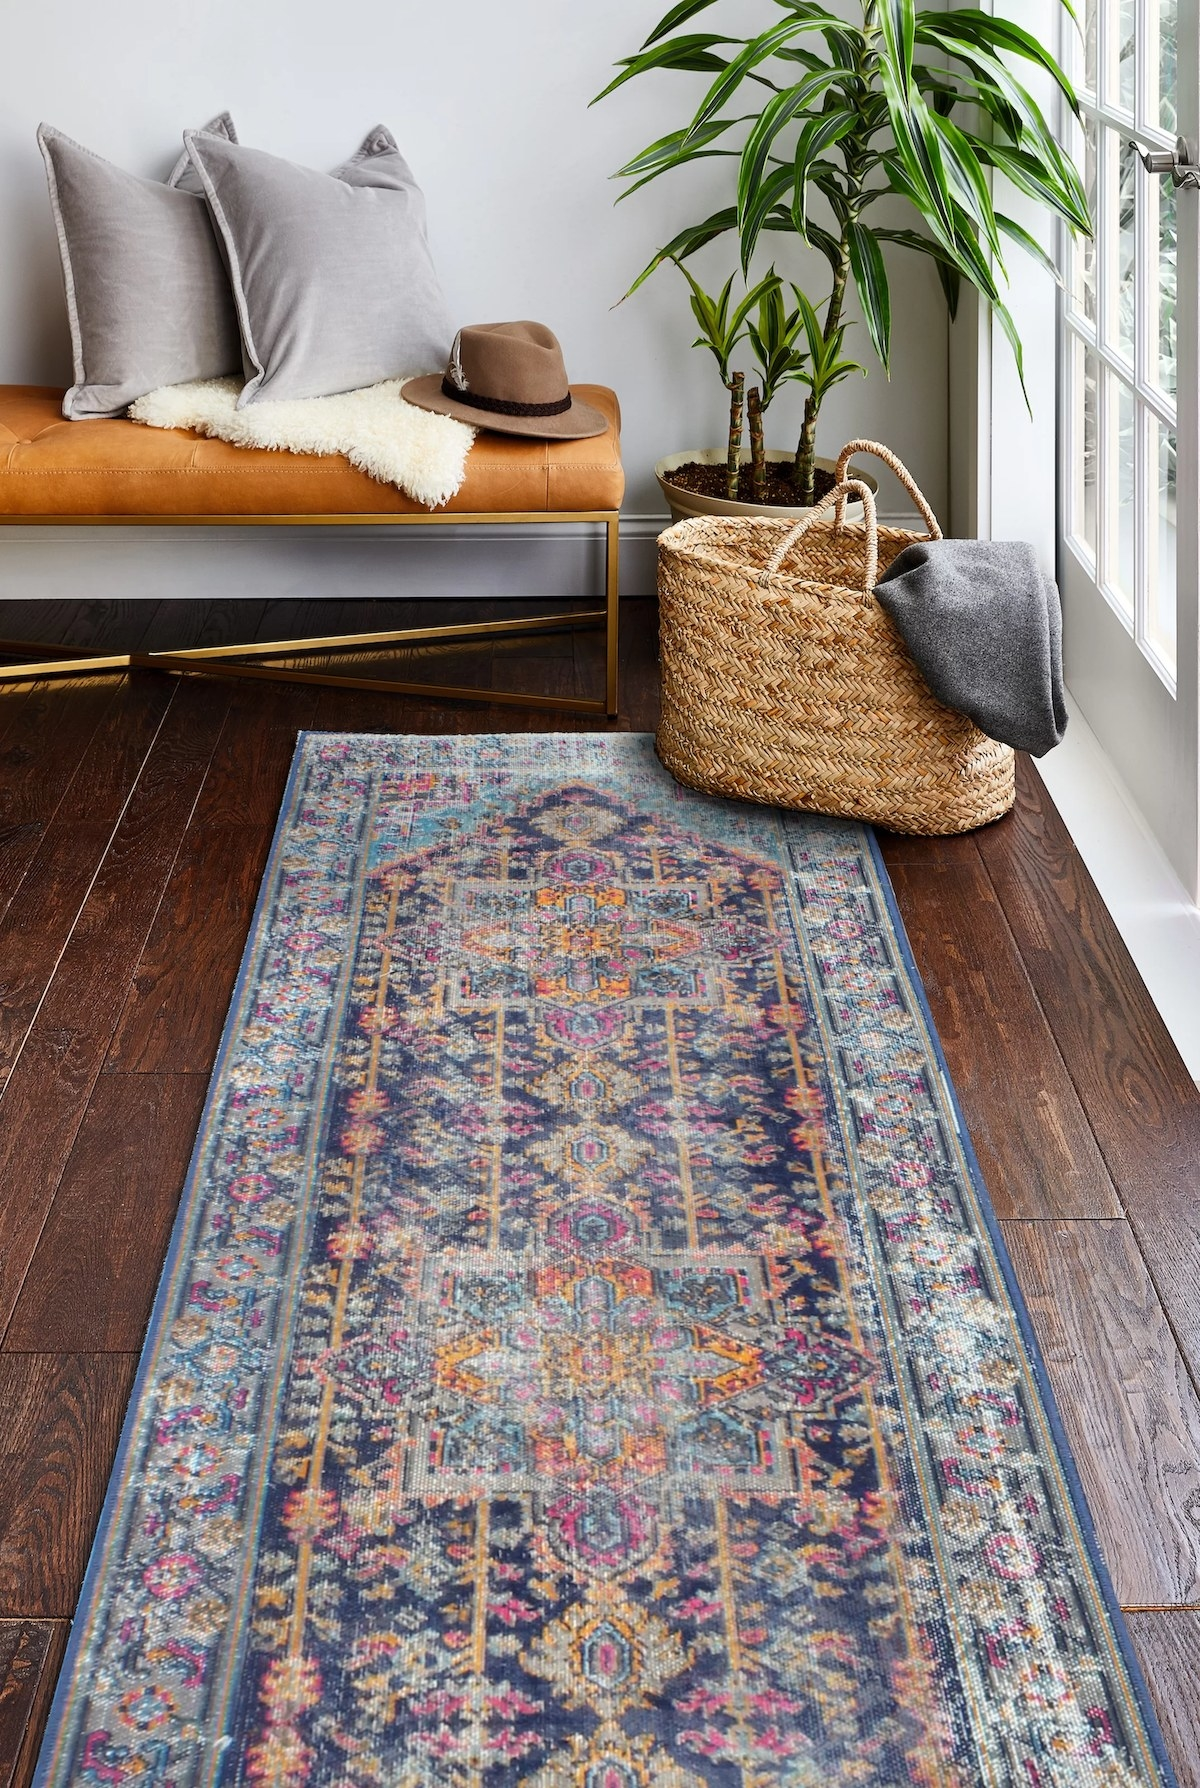 The blue, pink and beige runner in an entryway